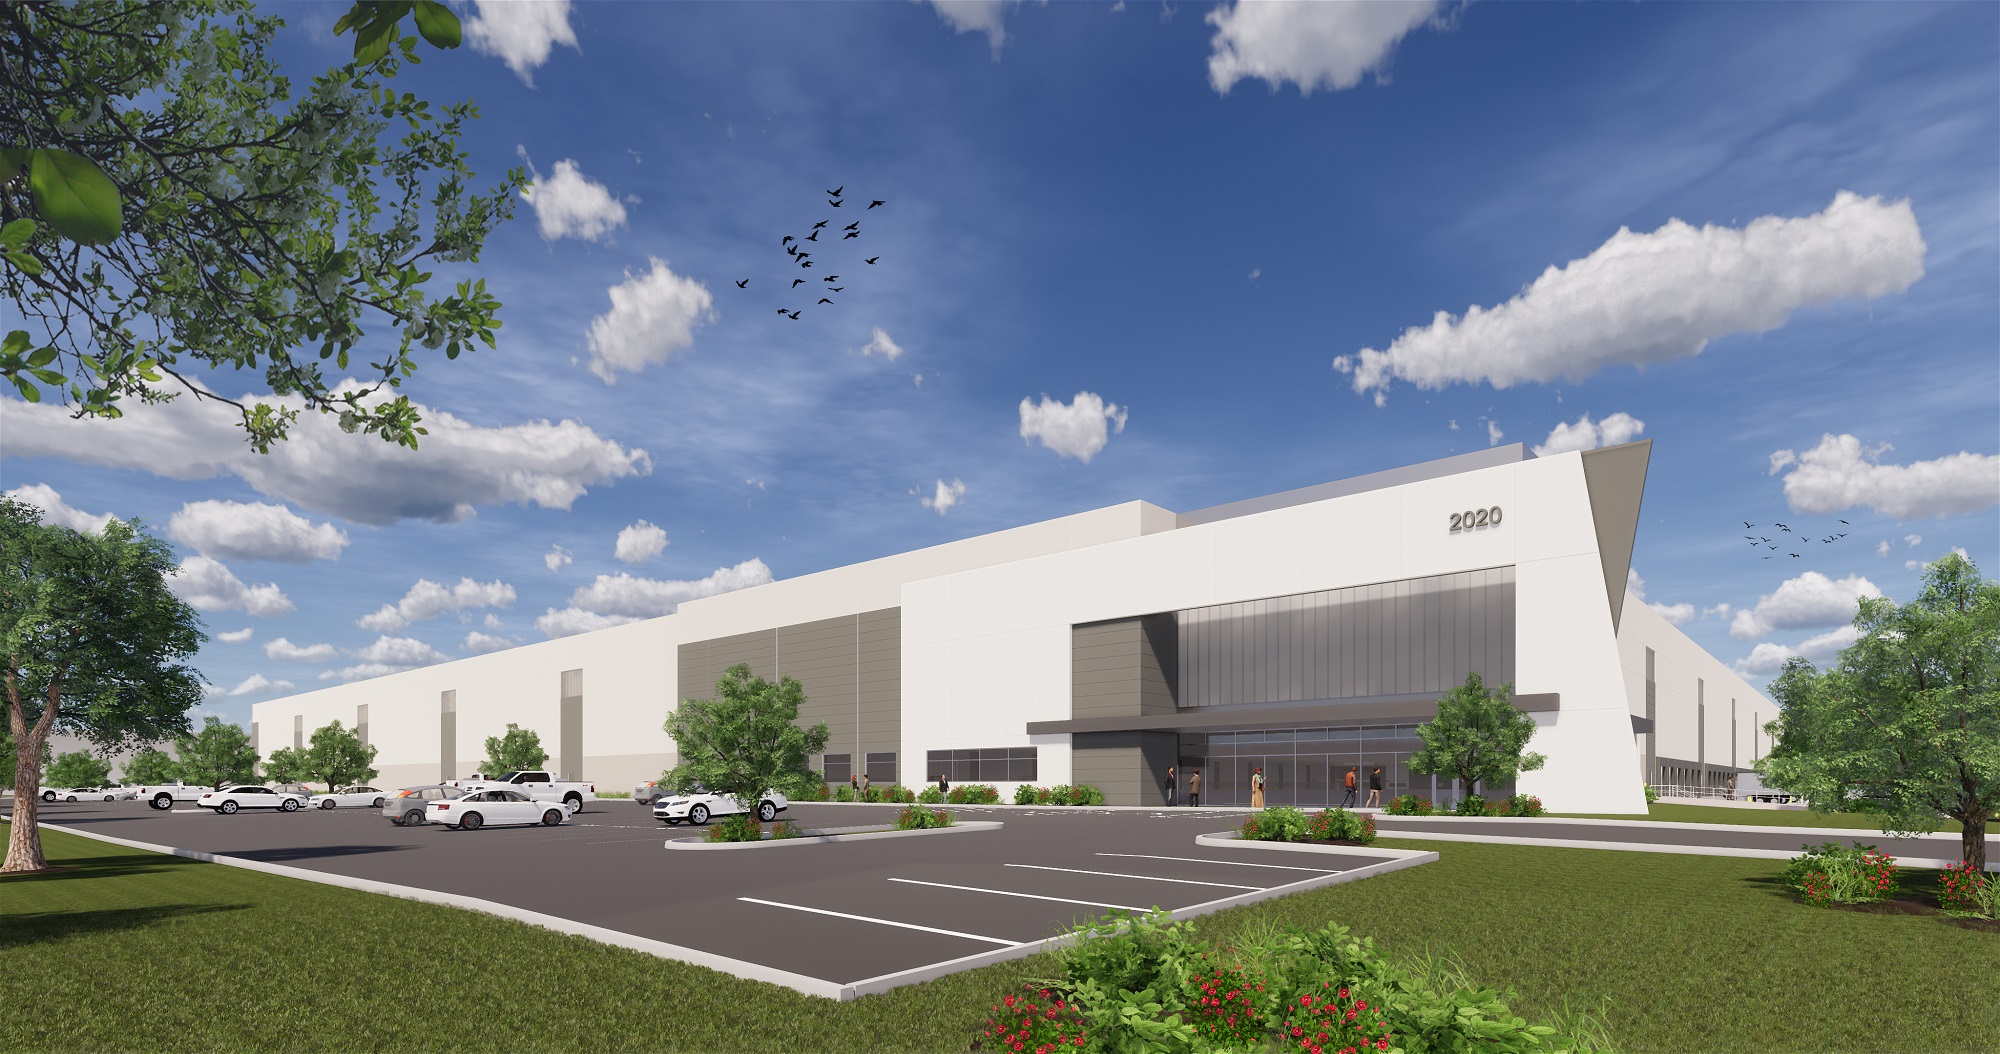 Rendering for Veronica Ave. in Franklin Township. - CROW HOLDINGS INDUSTRIAL